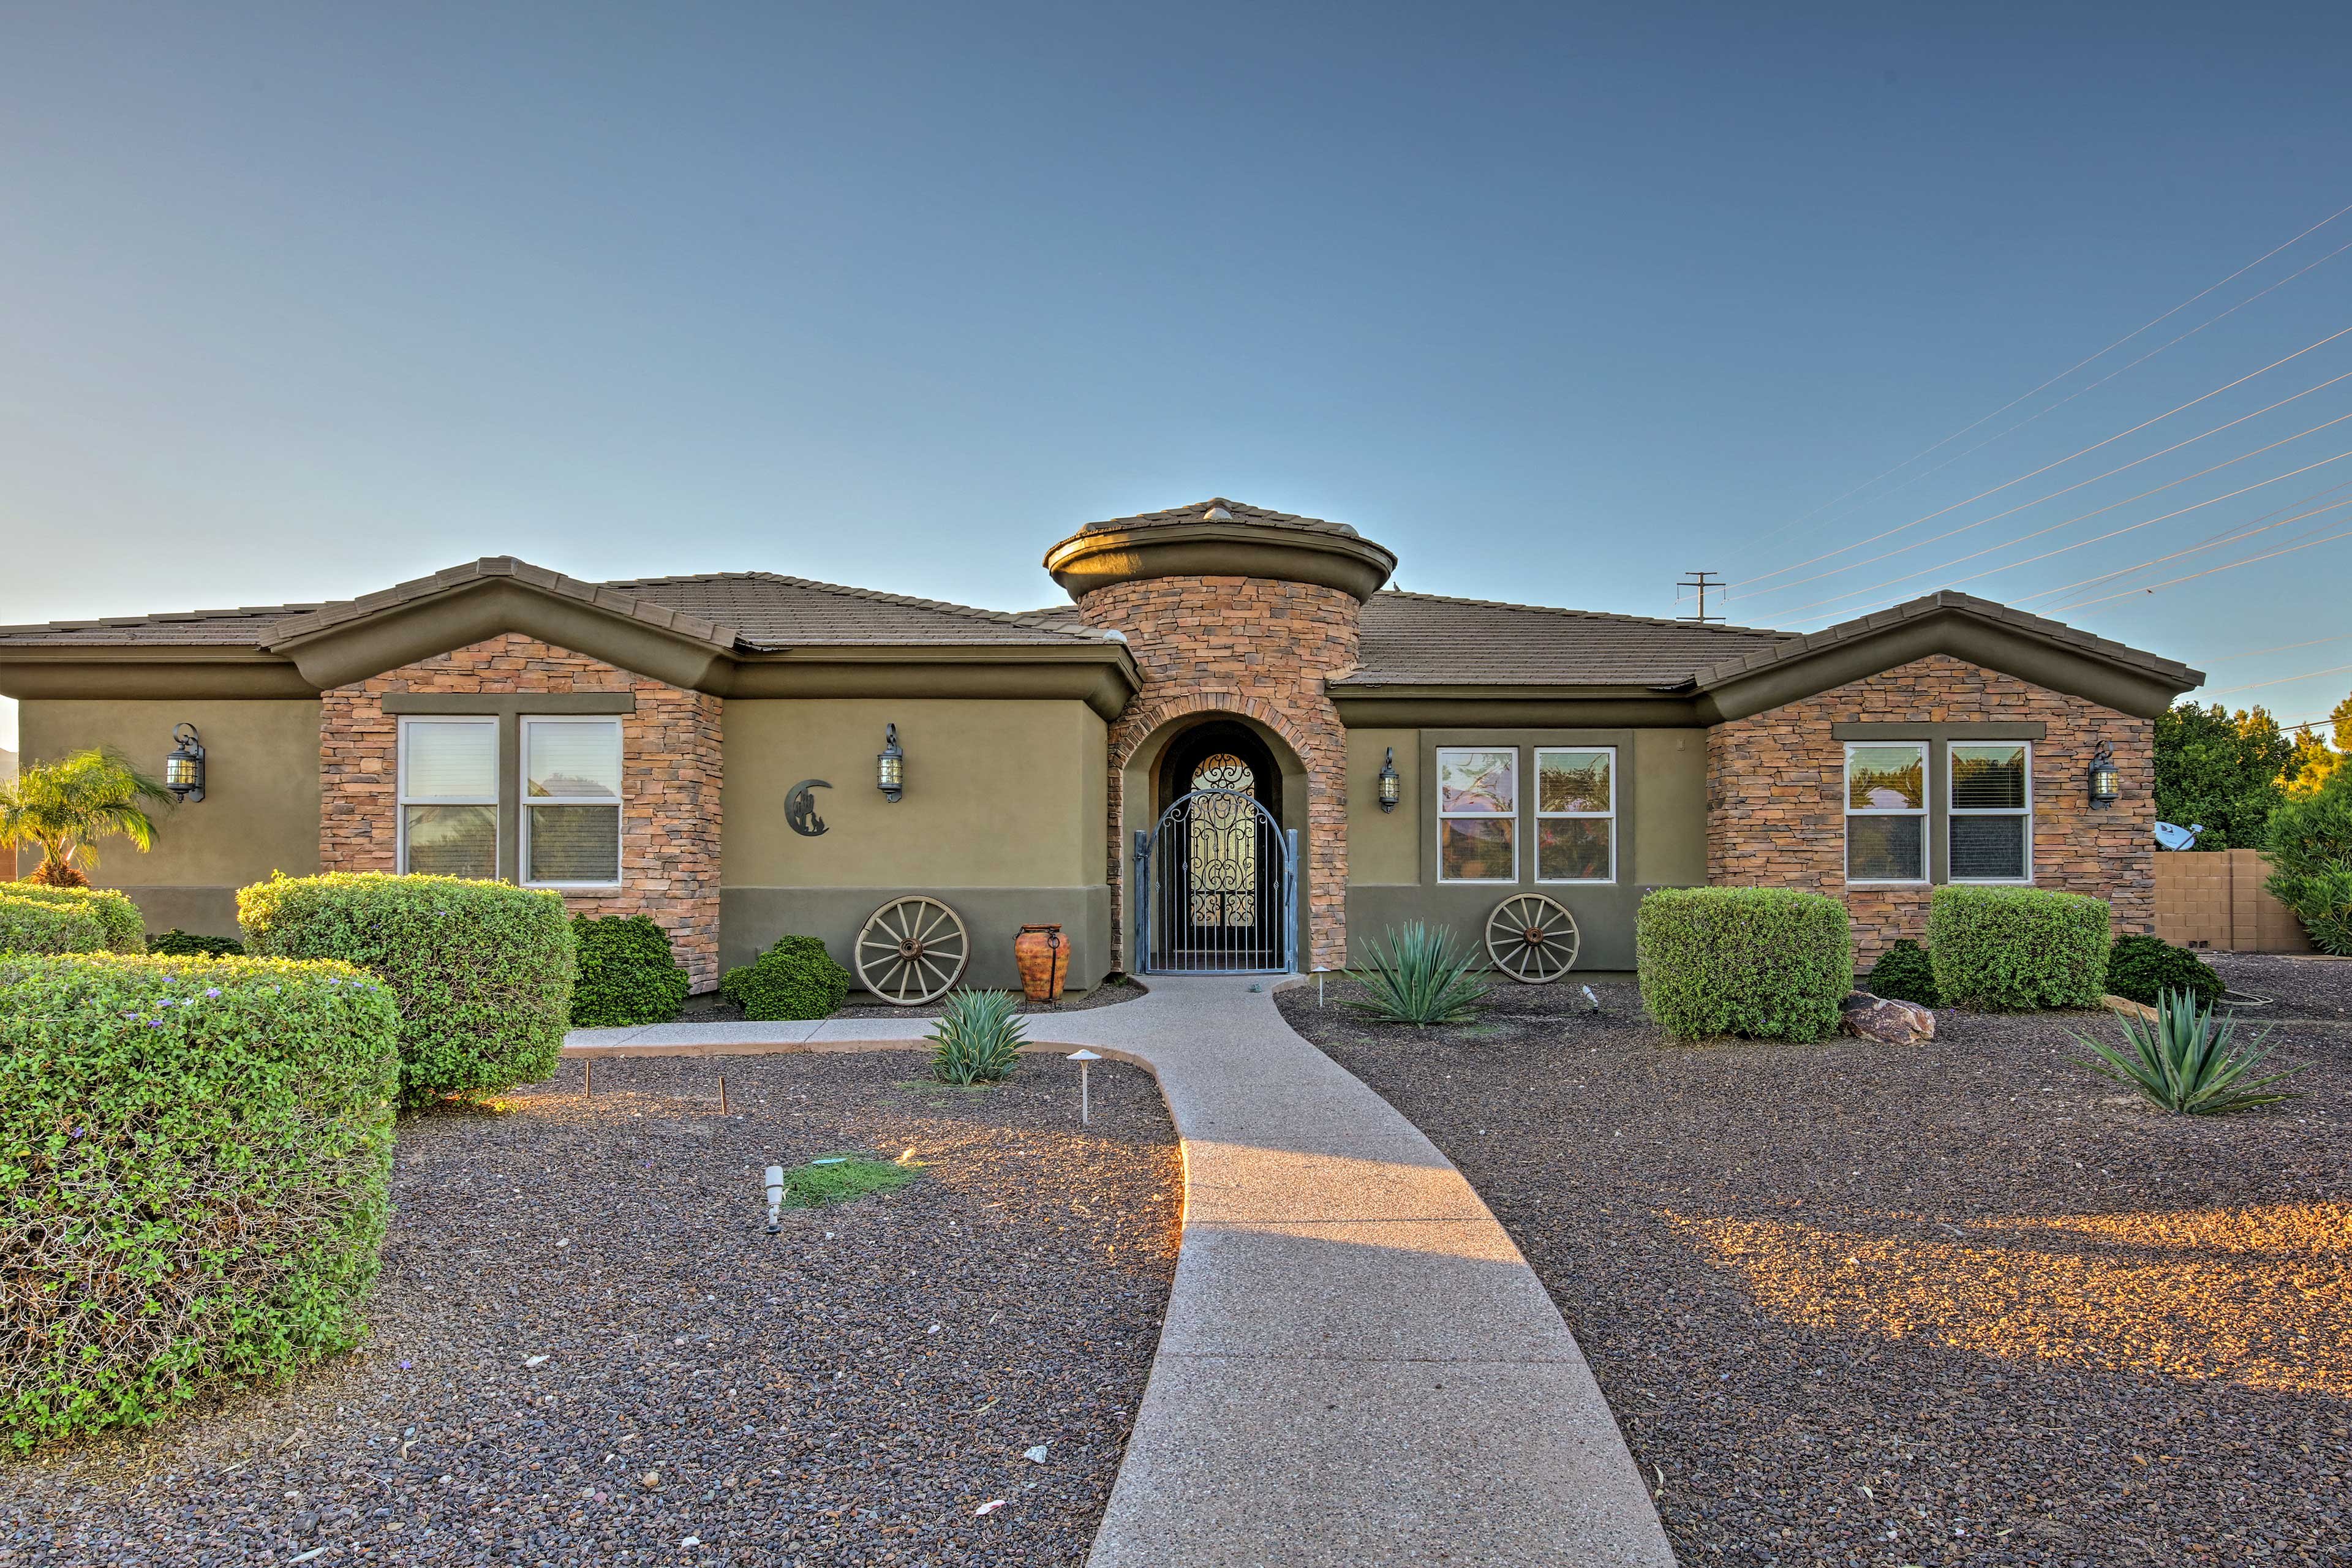 This 4-bedroom, 3.5-bath accommodates 8 with space for 1 more.